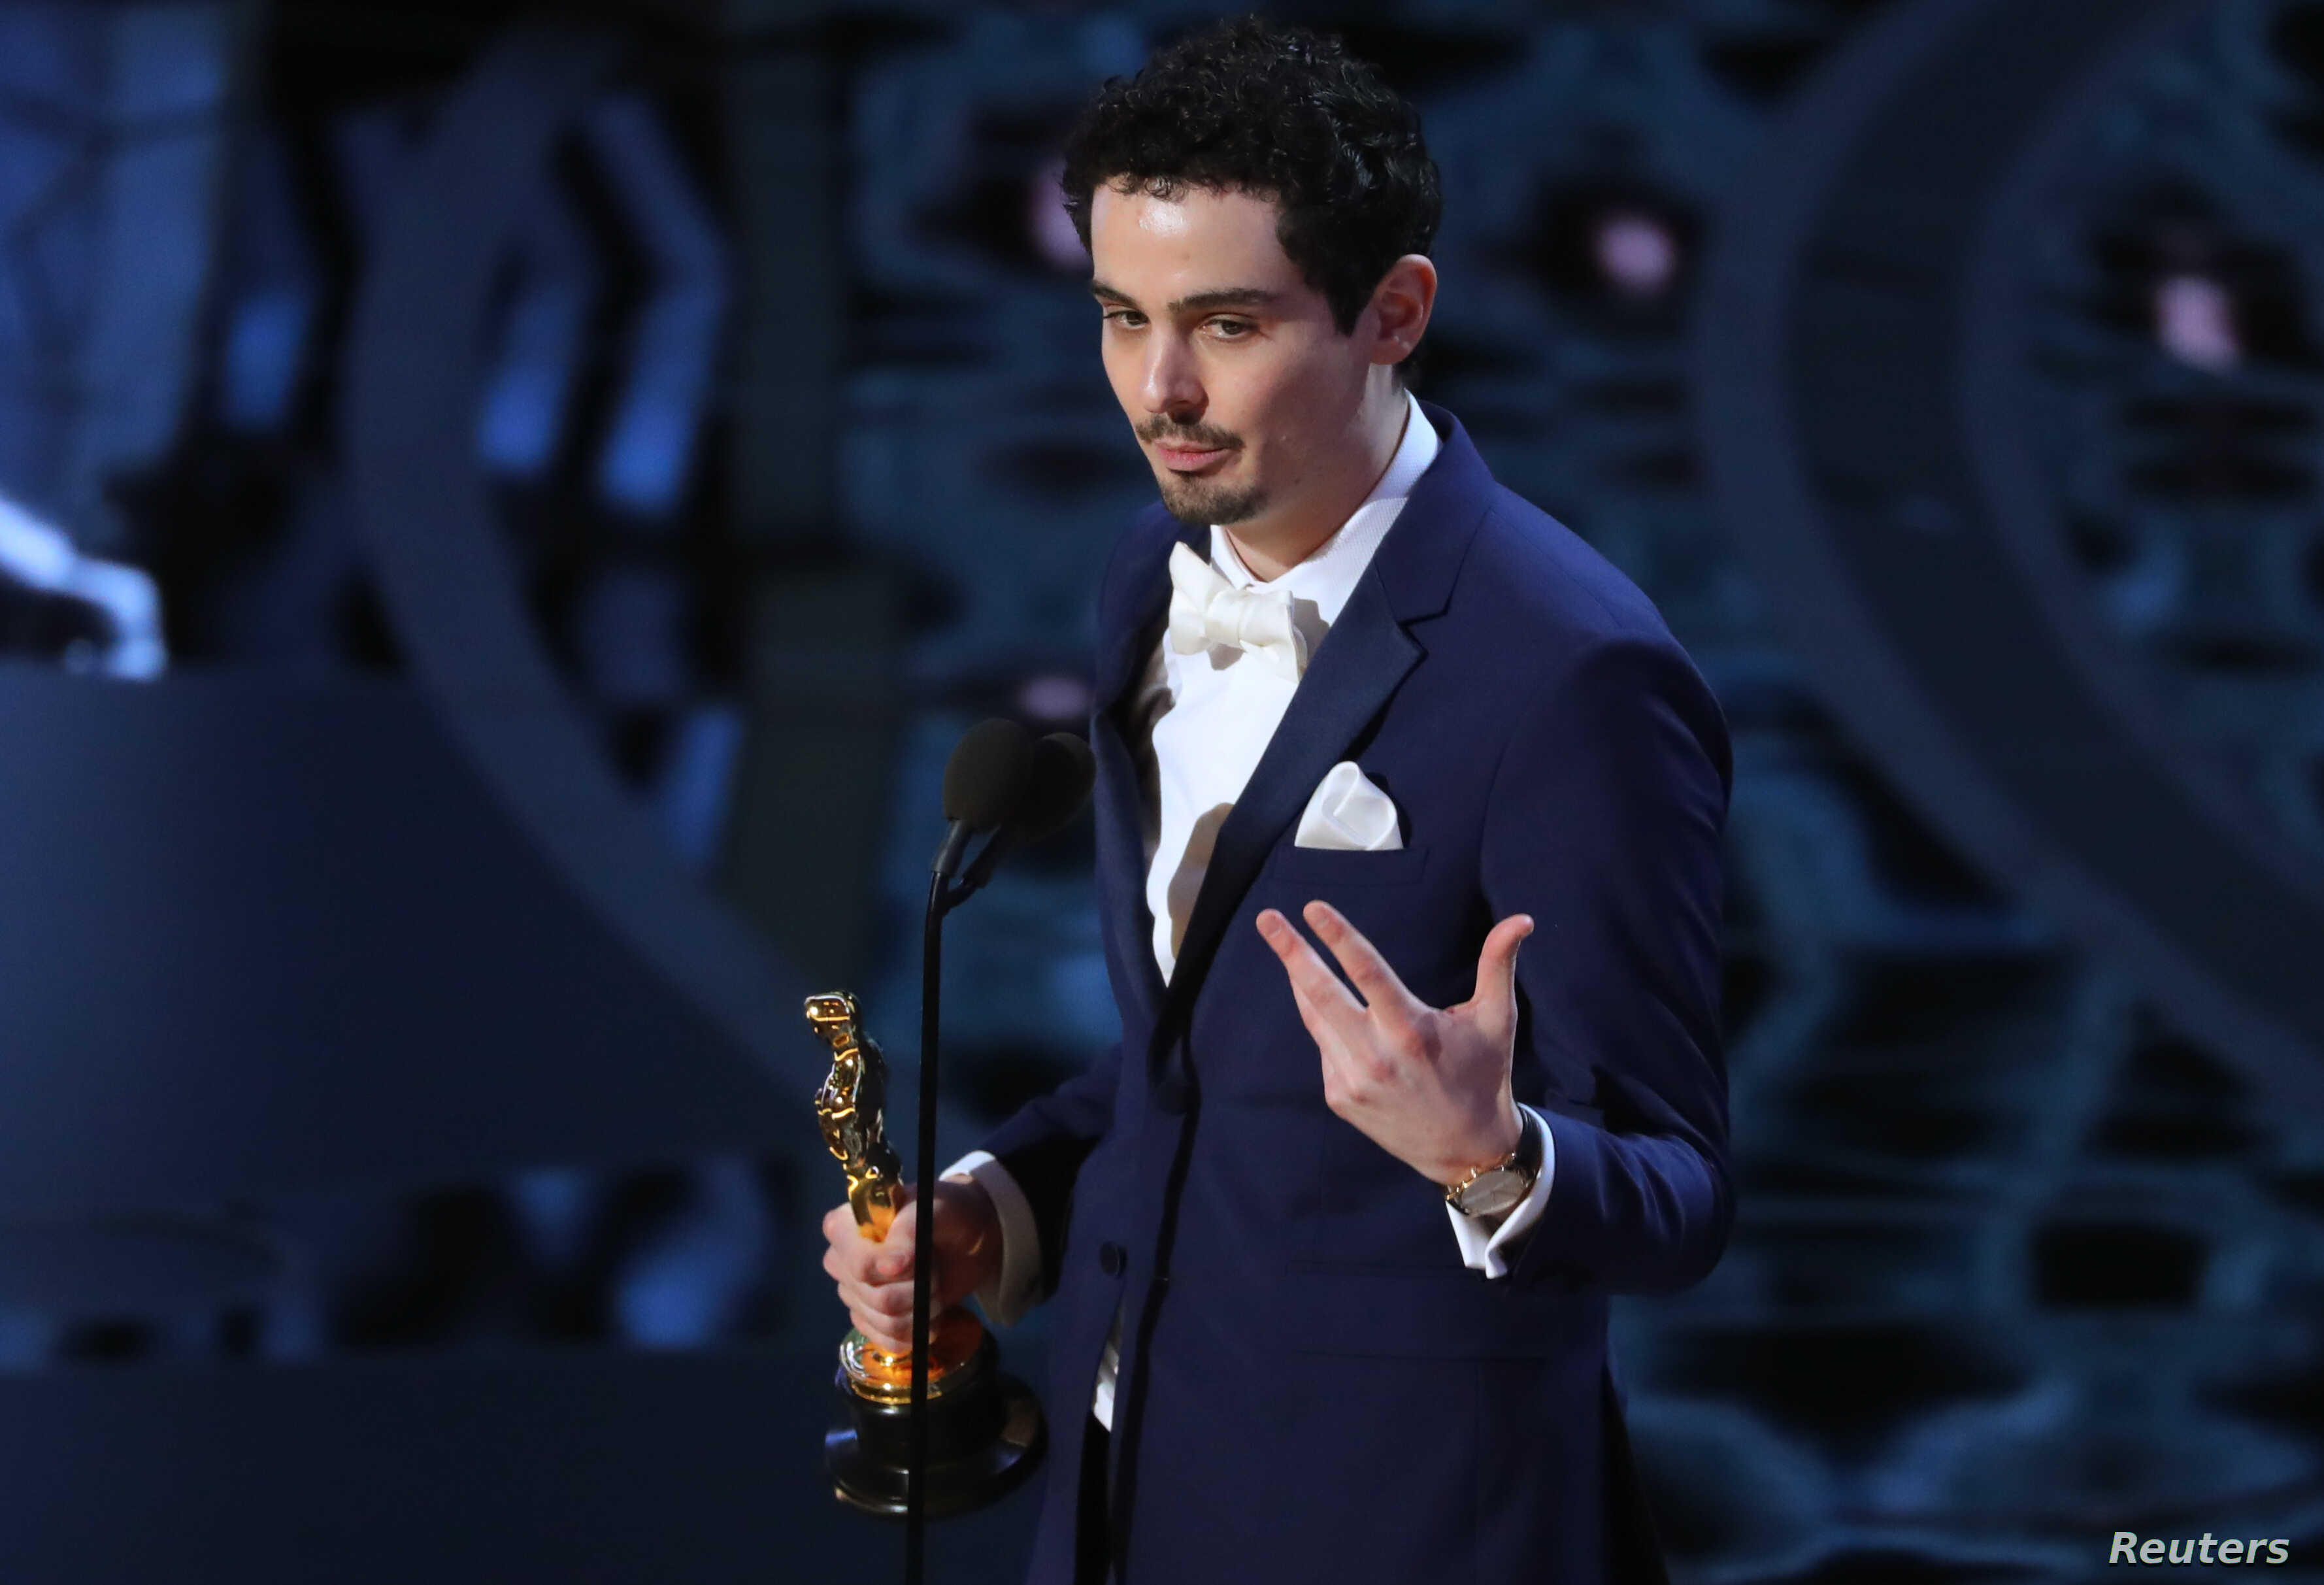 Damien Chazelle accepts the award for winning Best Director.